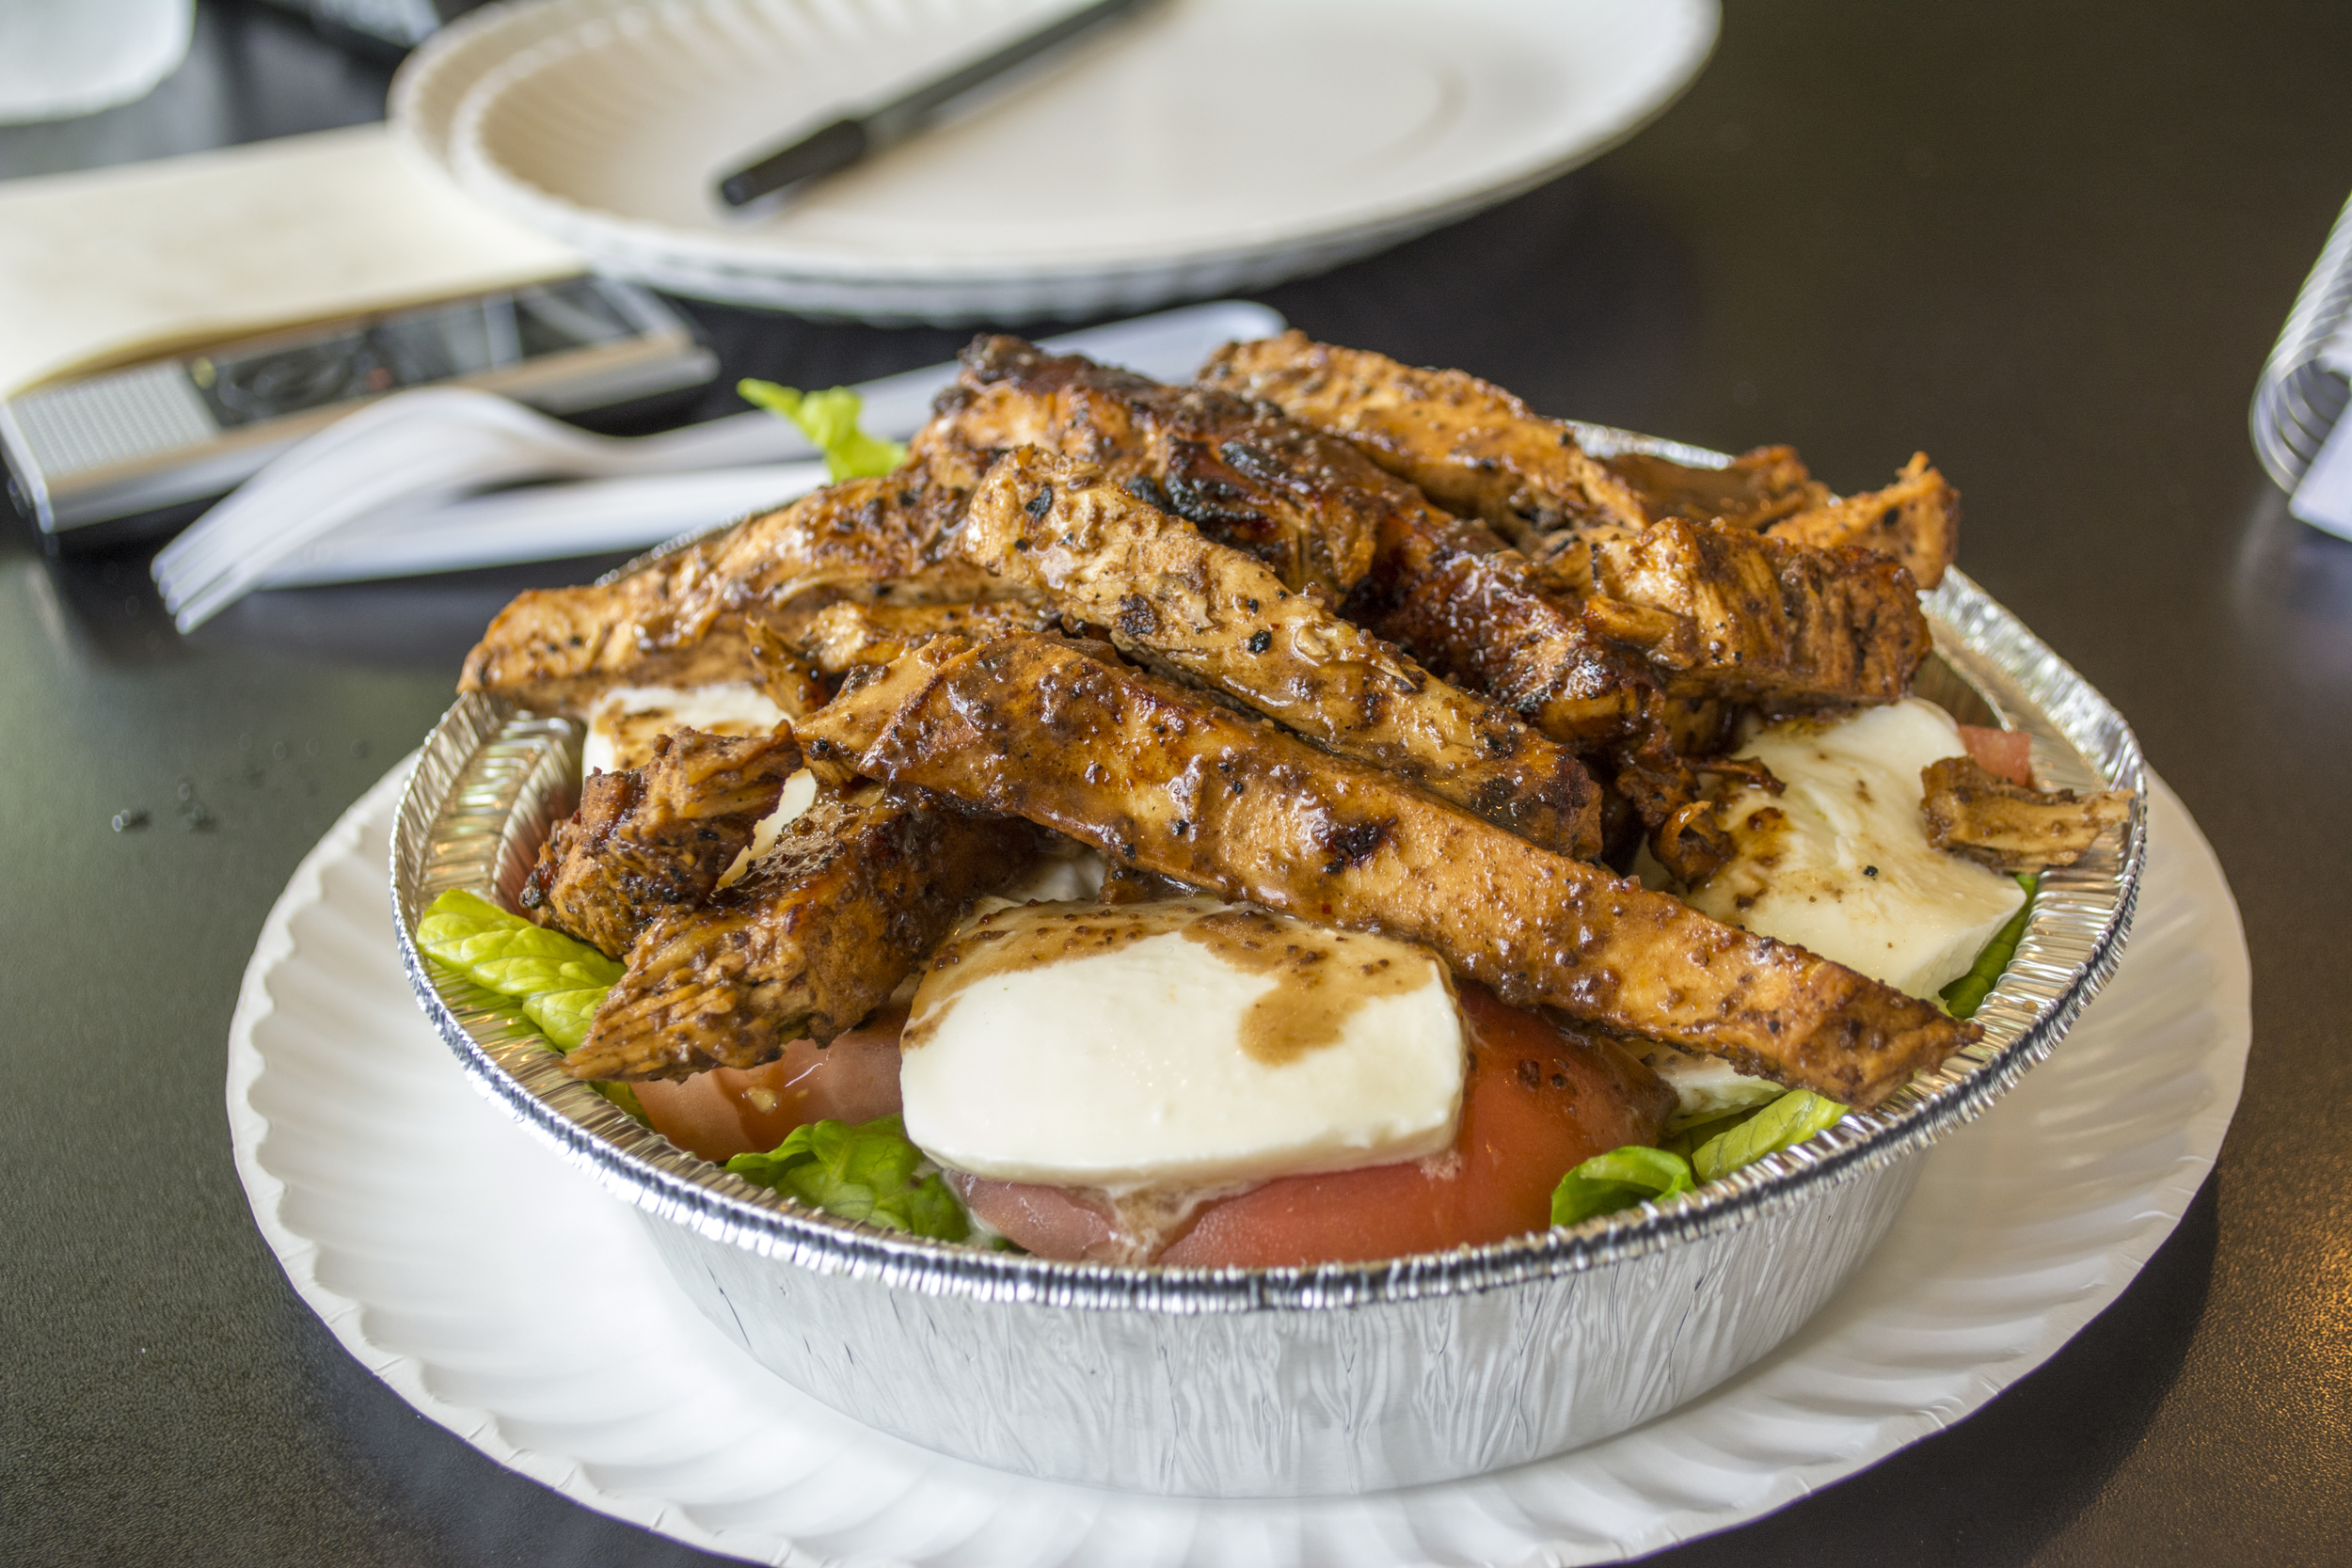 The grilled chicken, which can be added atop any of the salads at Jonny D's, is specially marinated in family recipe, giving it a smoky flavor, and making it a hit with customers.